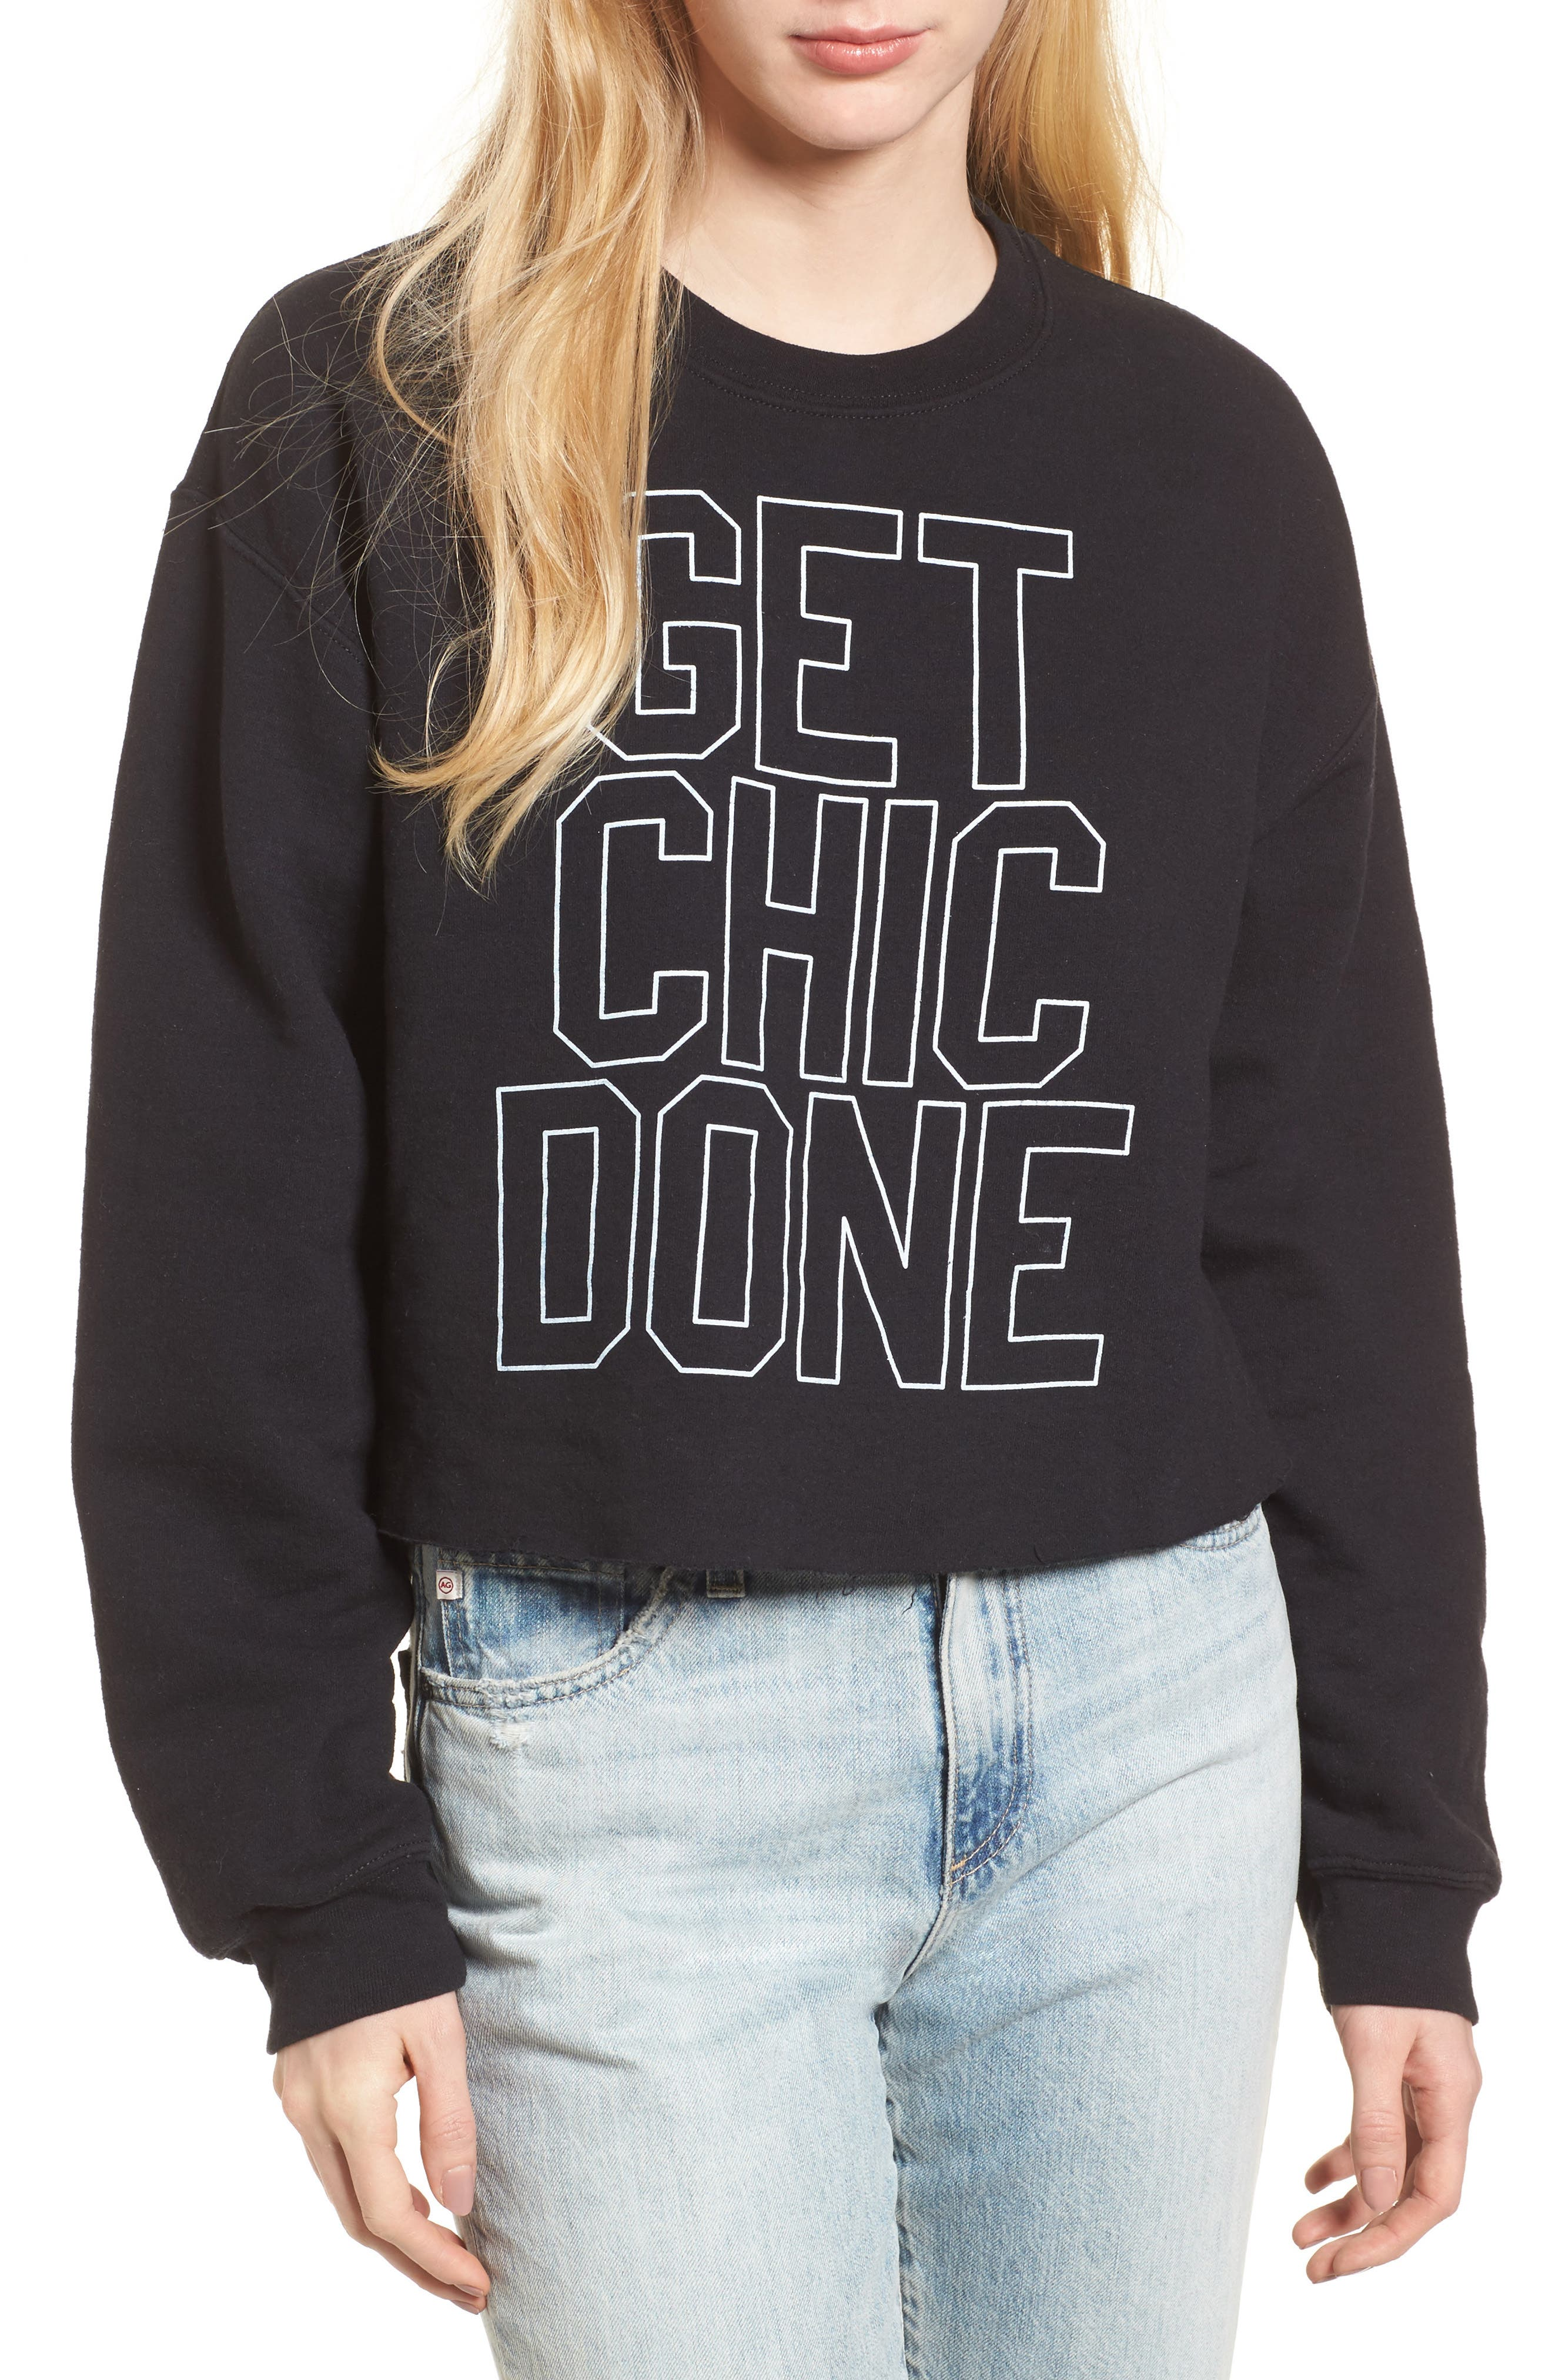 Get Chic Done Sweatshirt,                             Main thumbnail 1, color,                             Black